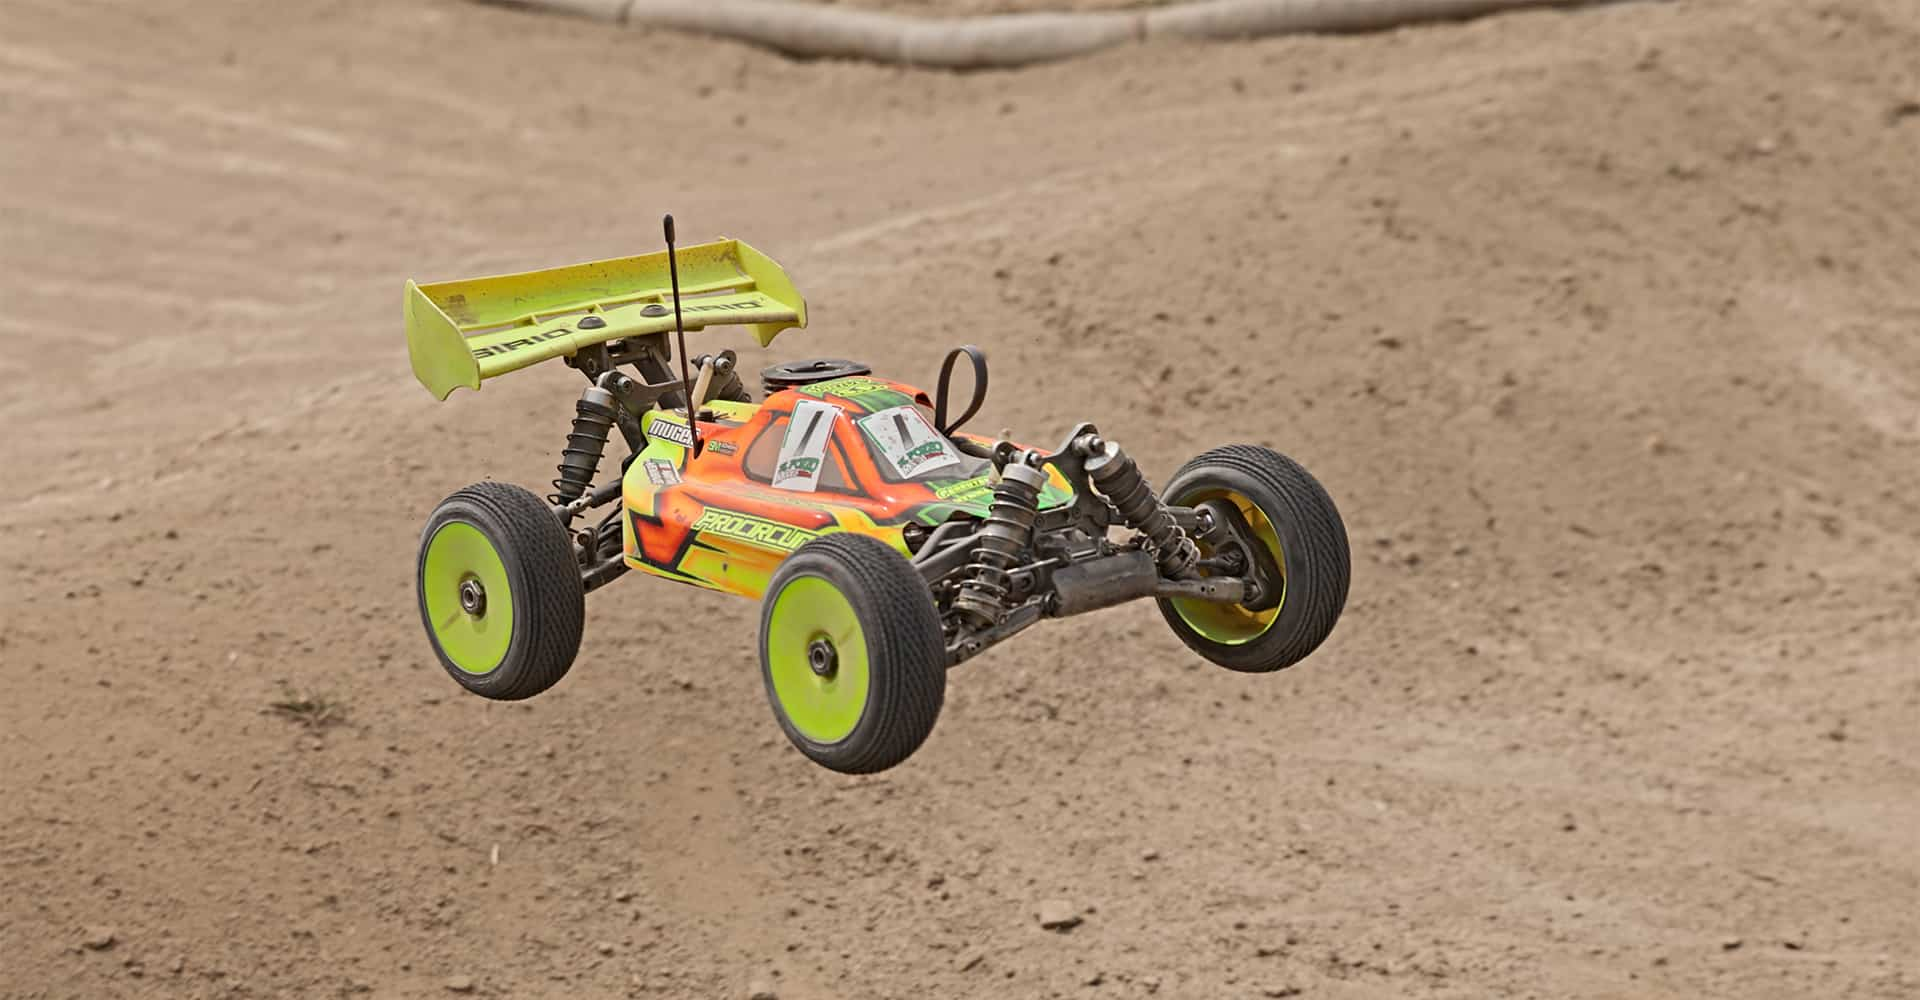 17 Best Nitro Gas Powered Rc Cars Trucks Dec 2020 Review